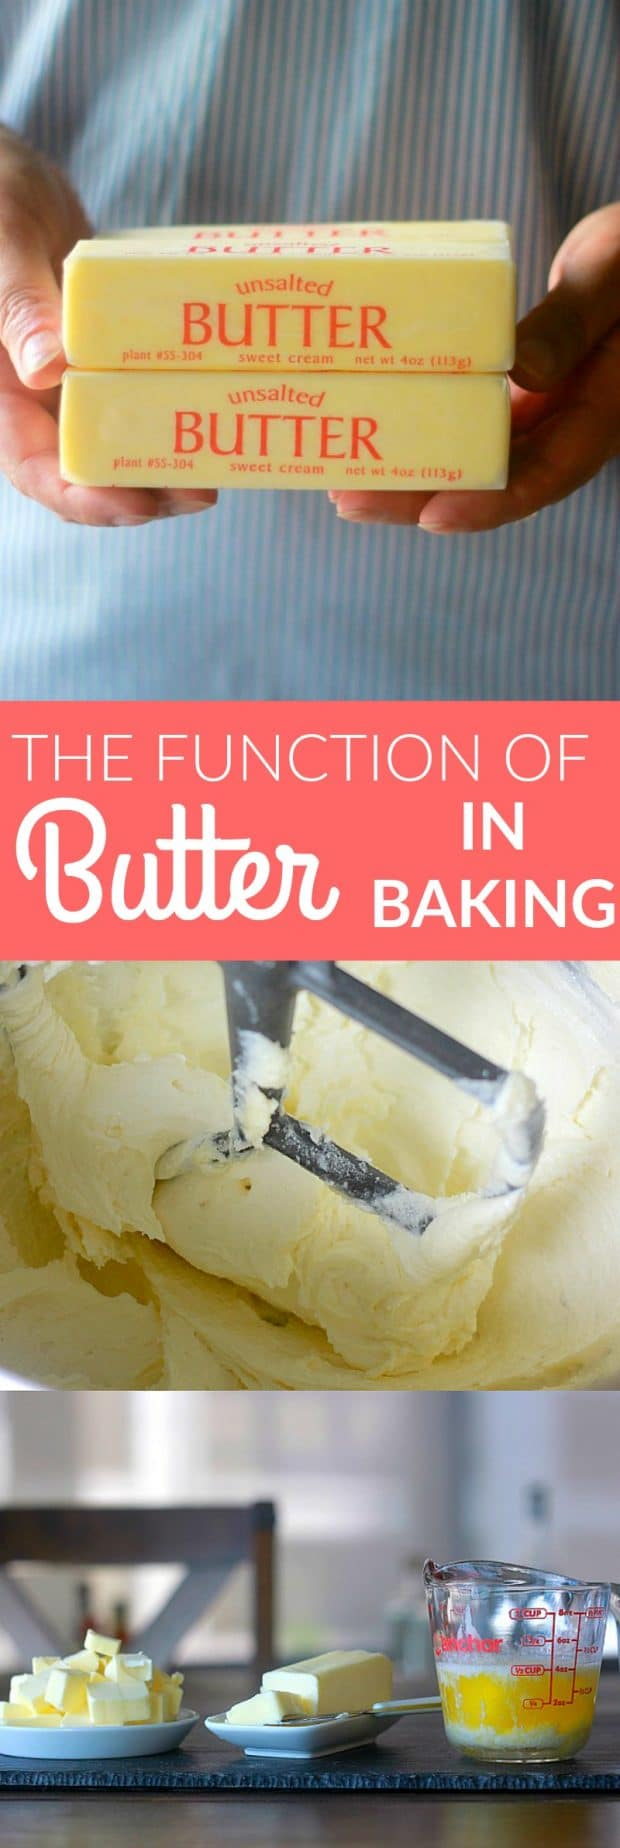 Understanding the function of butter in baking can be incredibly useful in becoming a better baker! Butter is a key ingredient in many baked goods. Having a grasp on the science of butter's various roles in baking is beneficial in using butter more successfully to create beautiful pastries and baked goods.